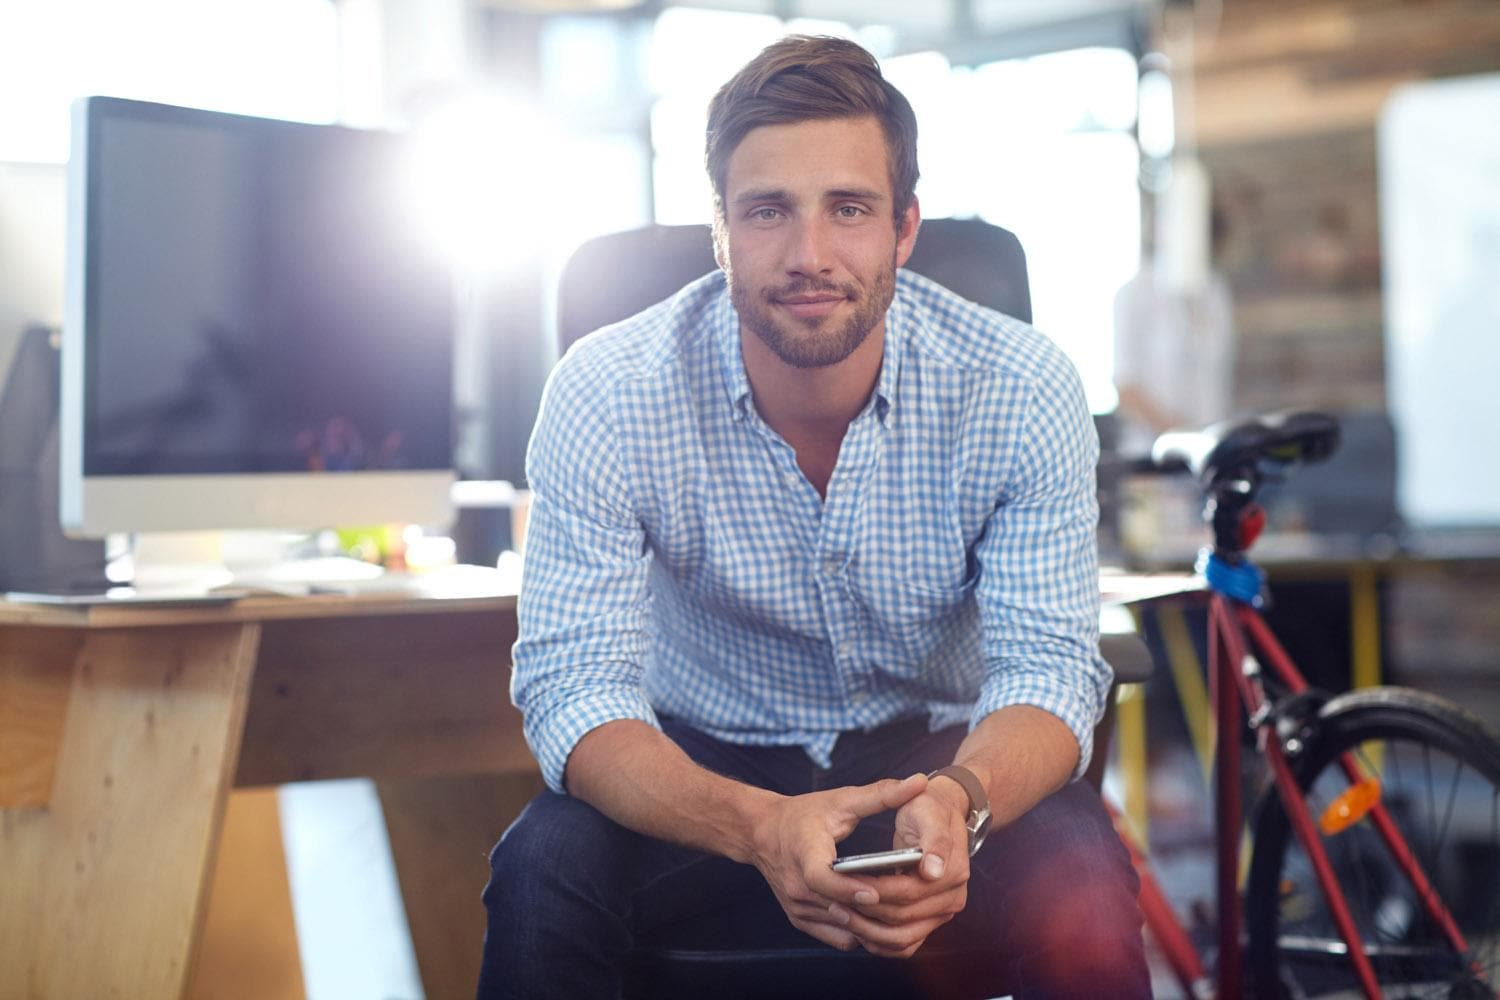 Young man in office looking directly at camera